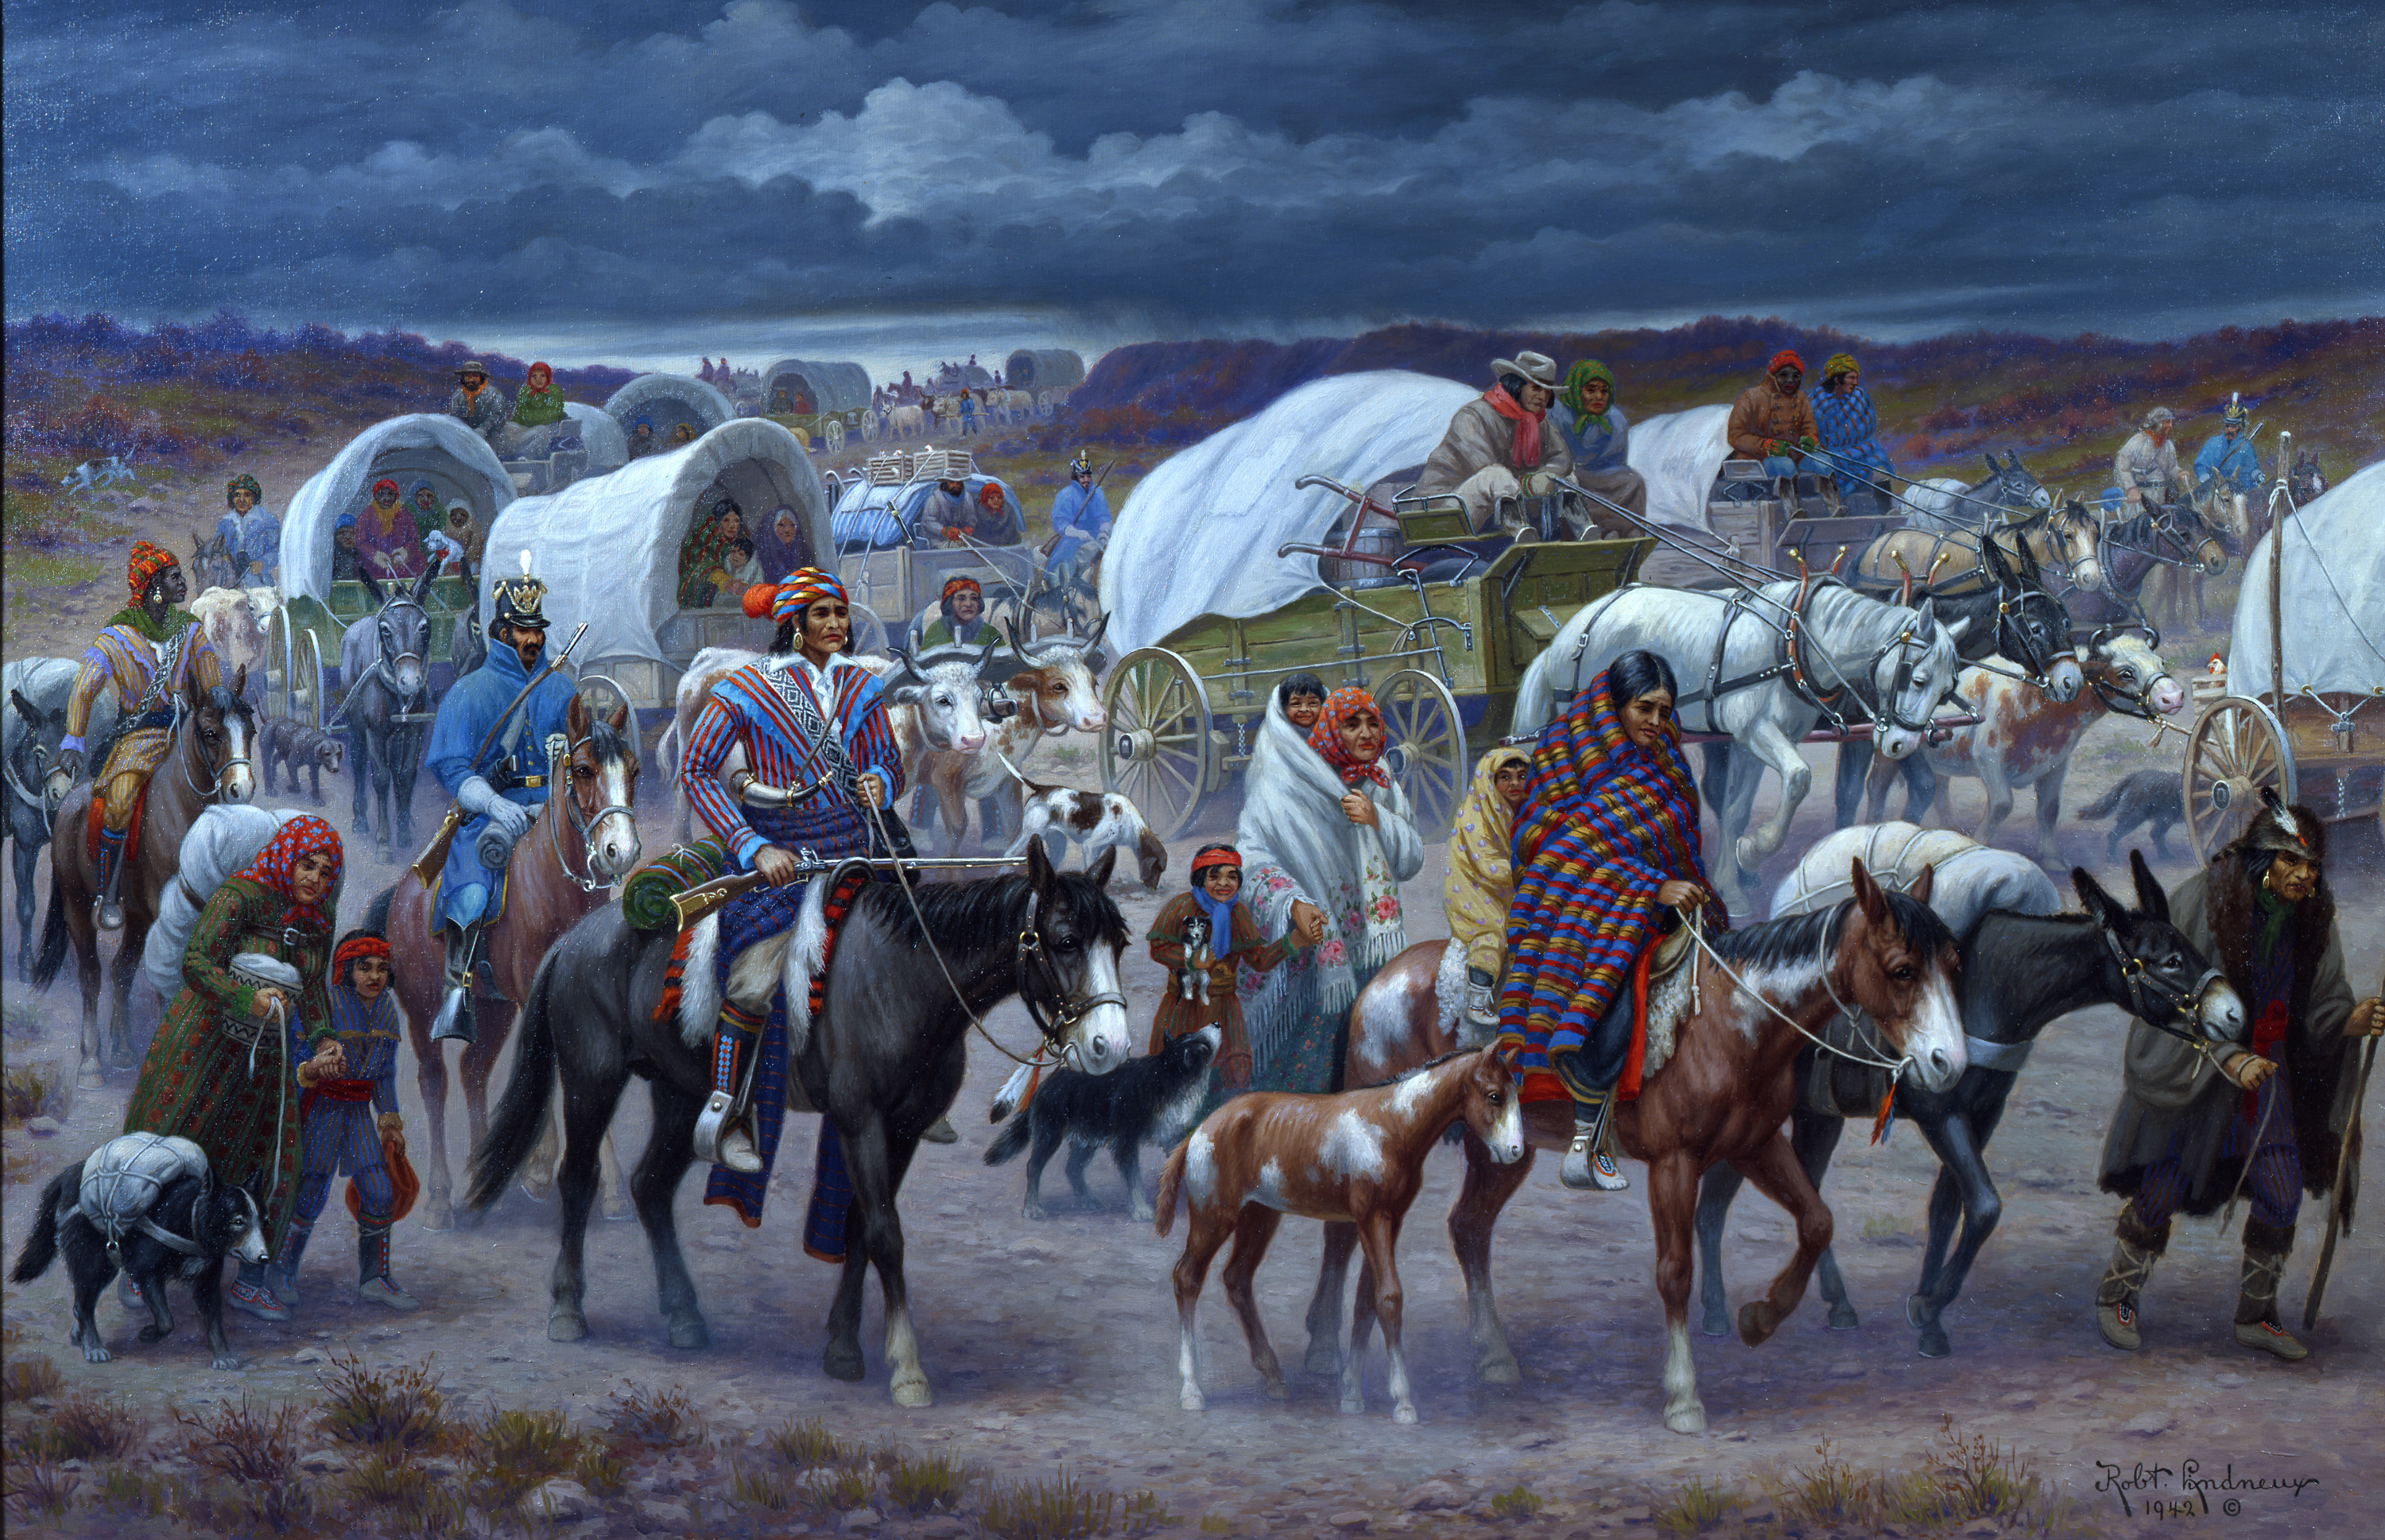 the removal of the cherokee The removal of the cherokee - the tragedy of the cherokee nation has haunted the legacy of andrew jackson's presidency the events that transpired after the implementation of his indian policy are indeed heinous and continually pose questions of morality for all generations.